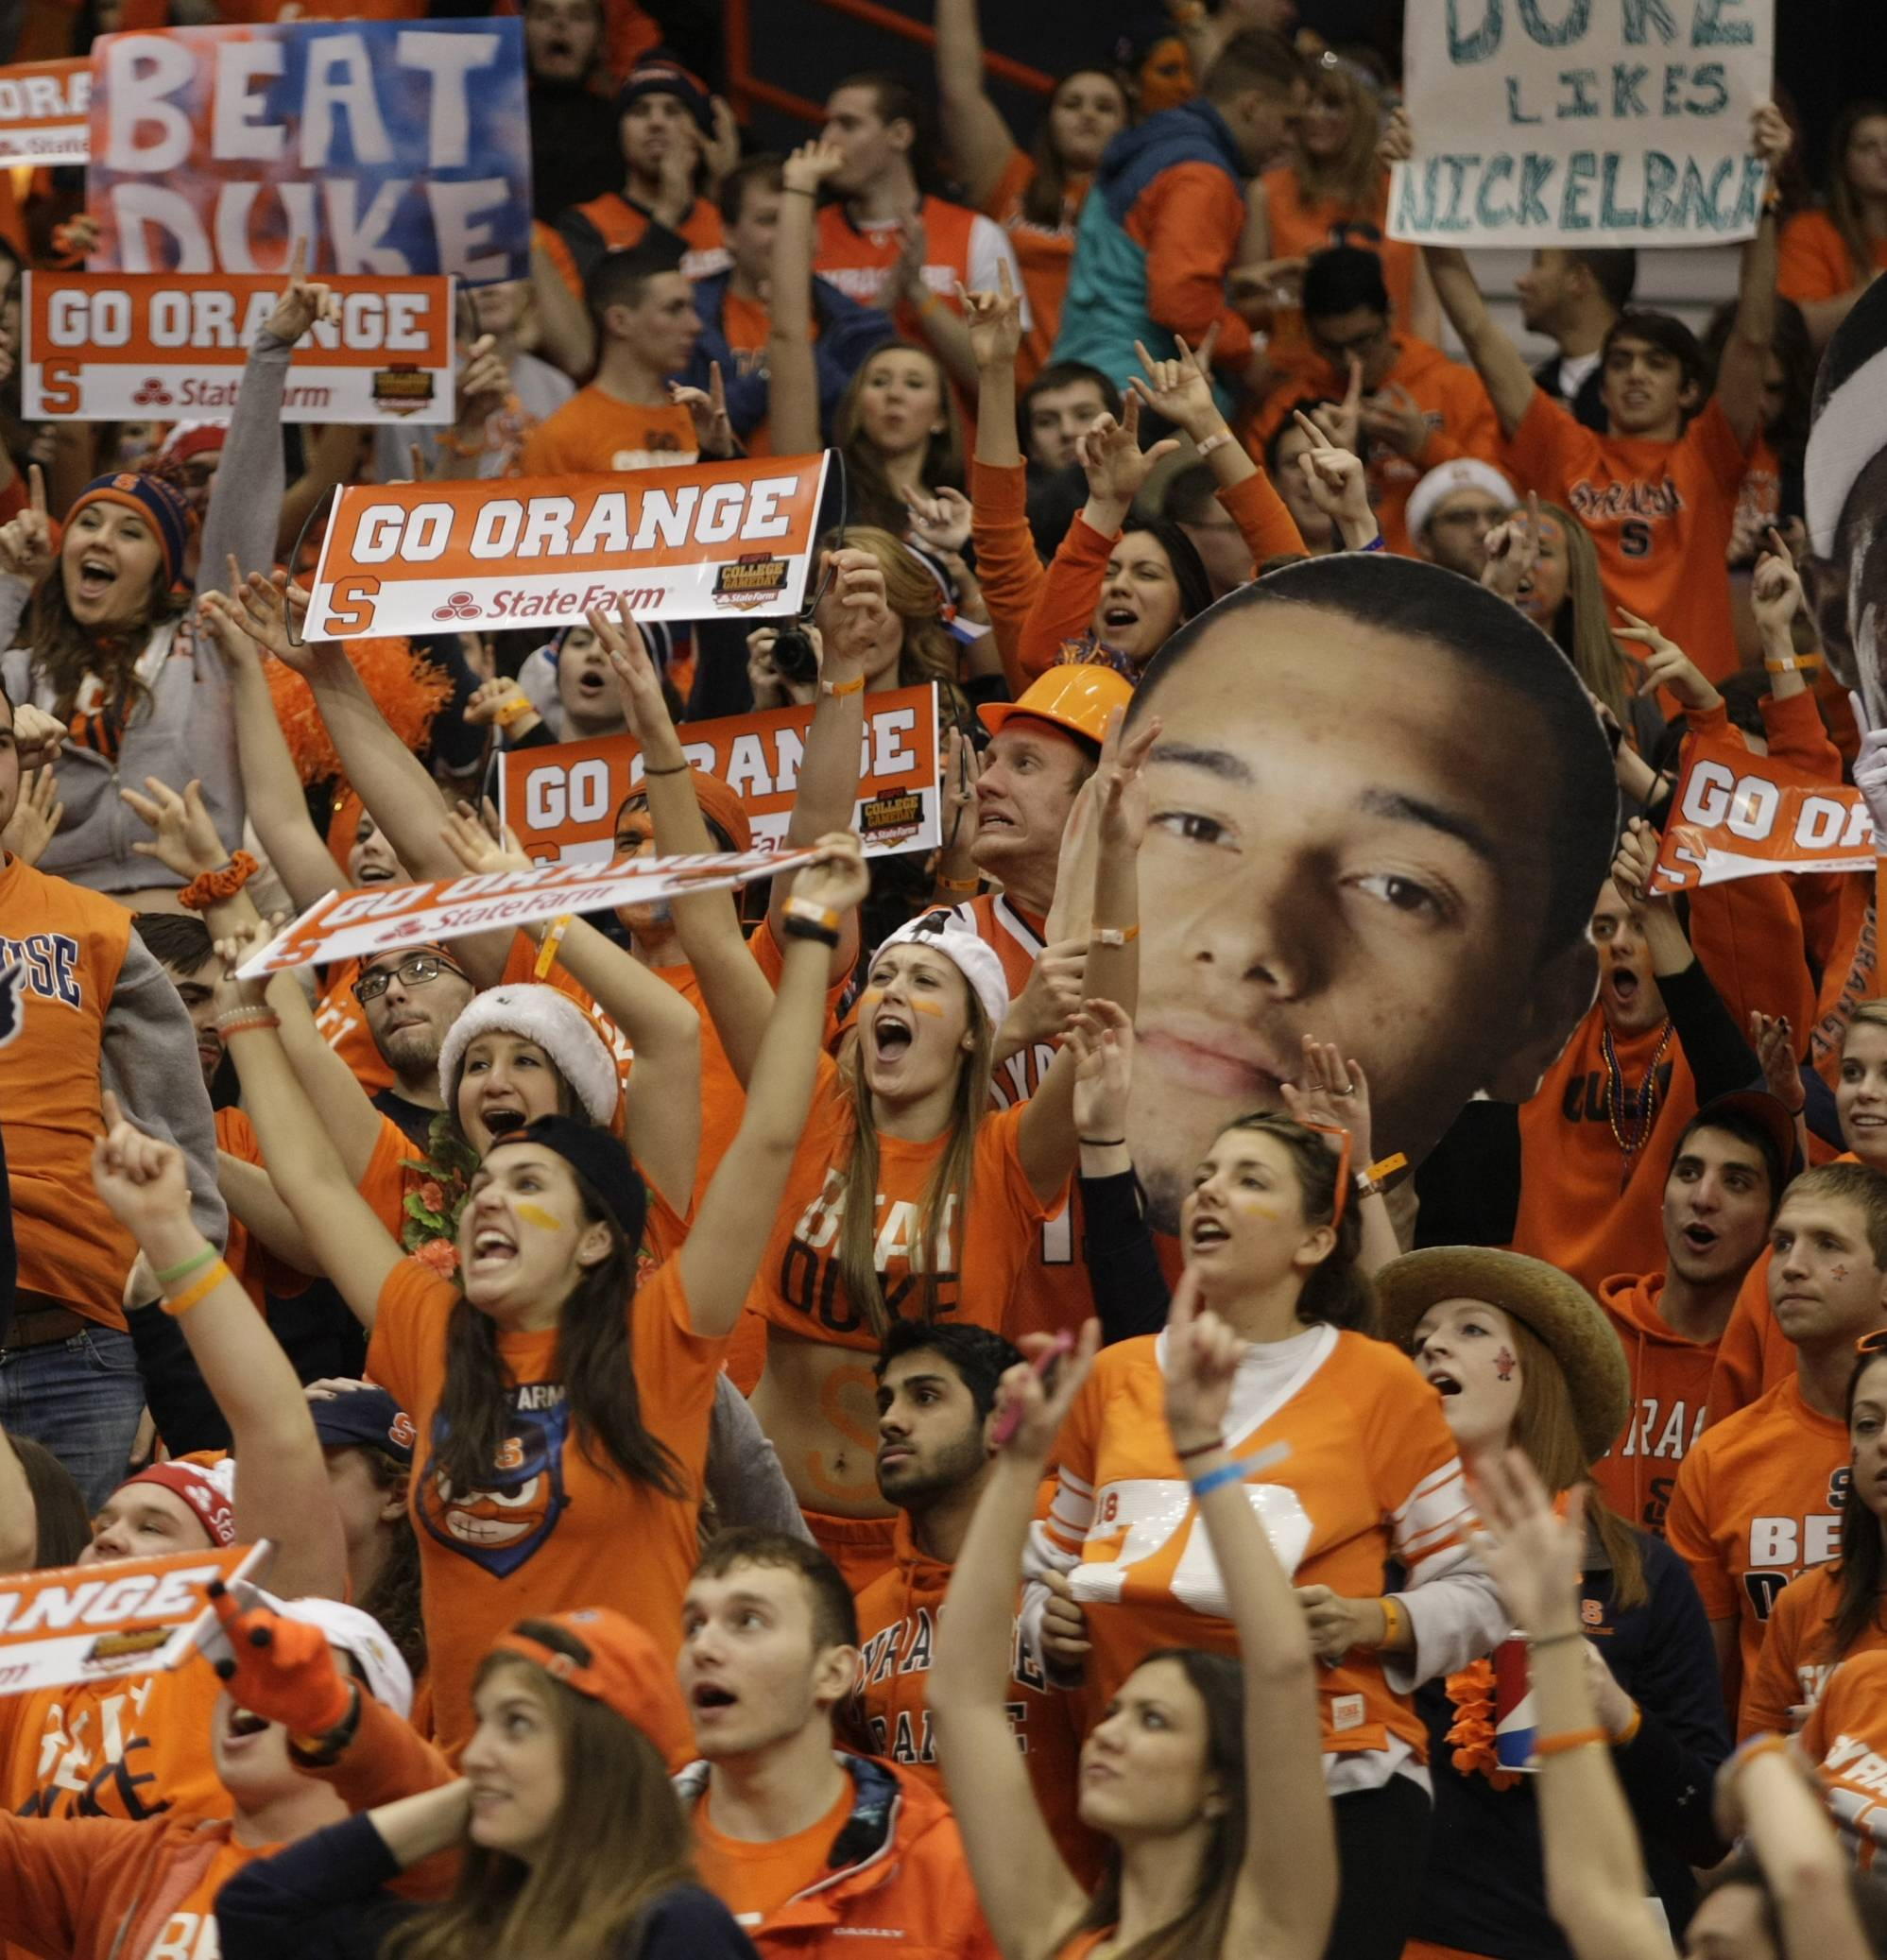 Basketball fans celebrate after Syracuse defeated Duke on Feb. 1 at home. The Princeton Review's annual rankings, released Monday, put the New York university at No. 1 on the list of the nation's top party schools.